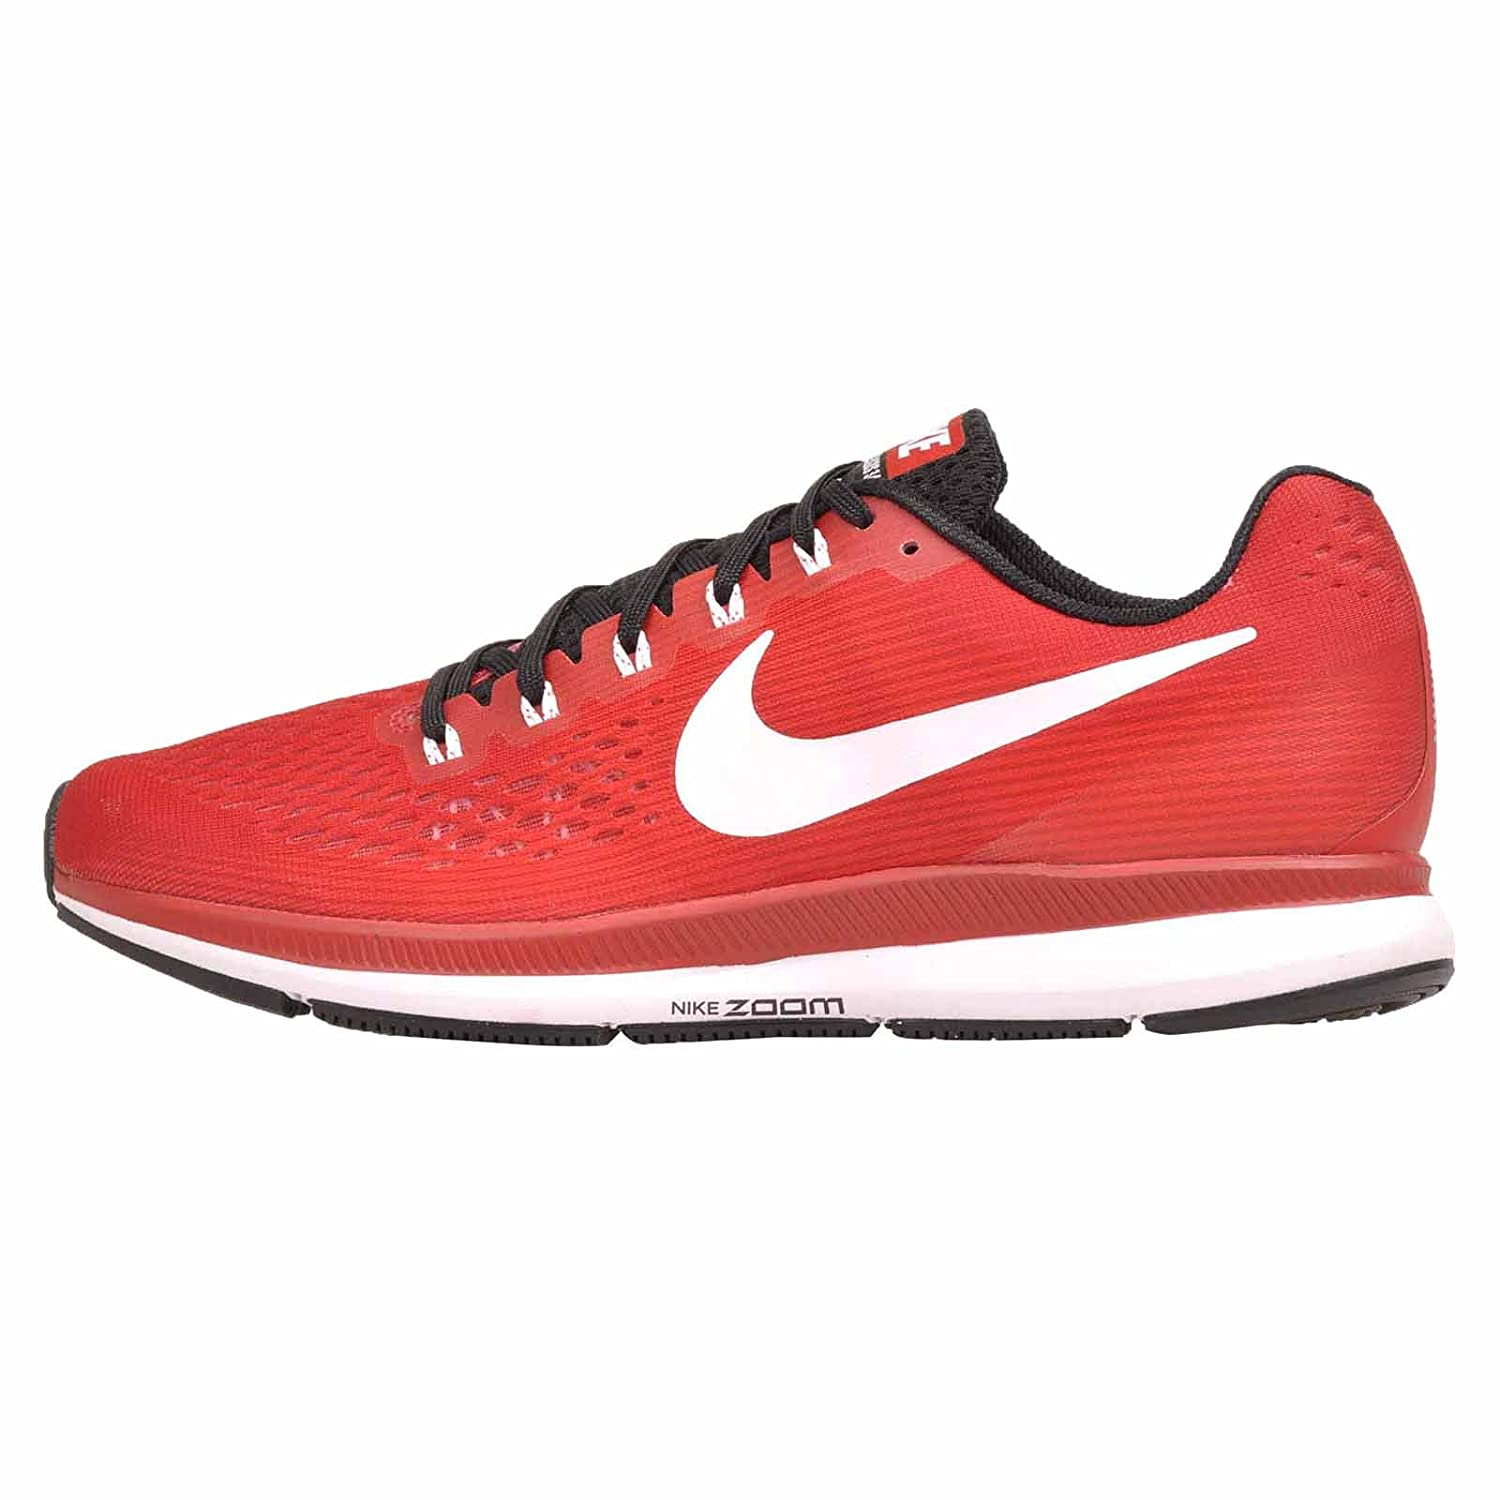 promo code cbded 4665a New Men's Nike Air Zoom Pegasus 34 (TB) Red Running Shoe Size 13